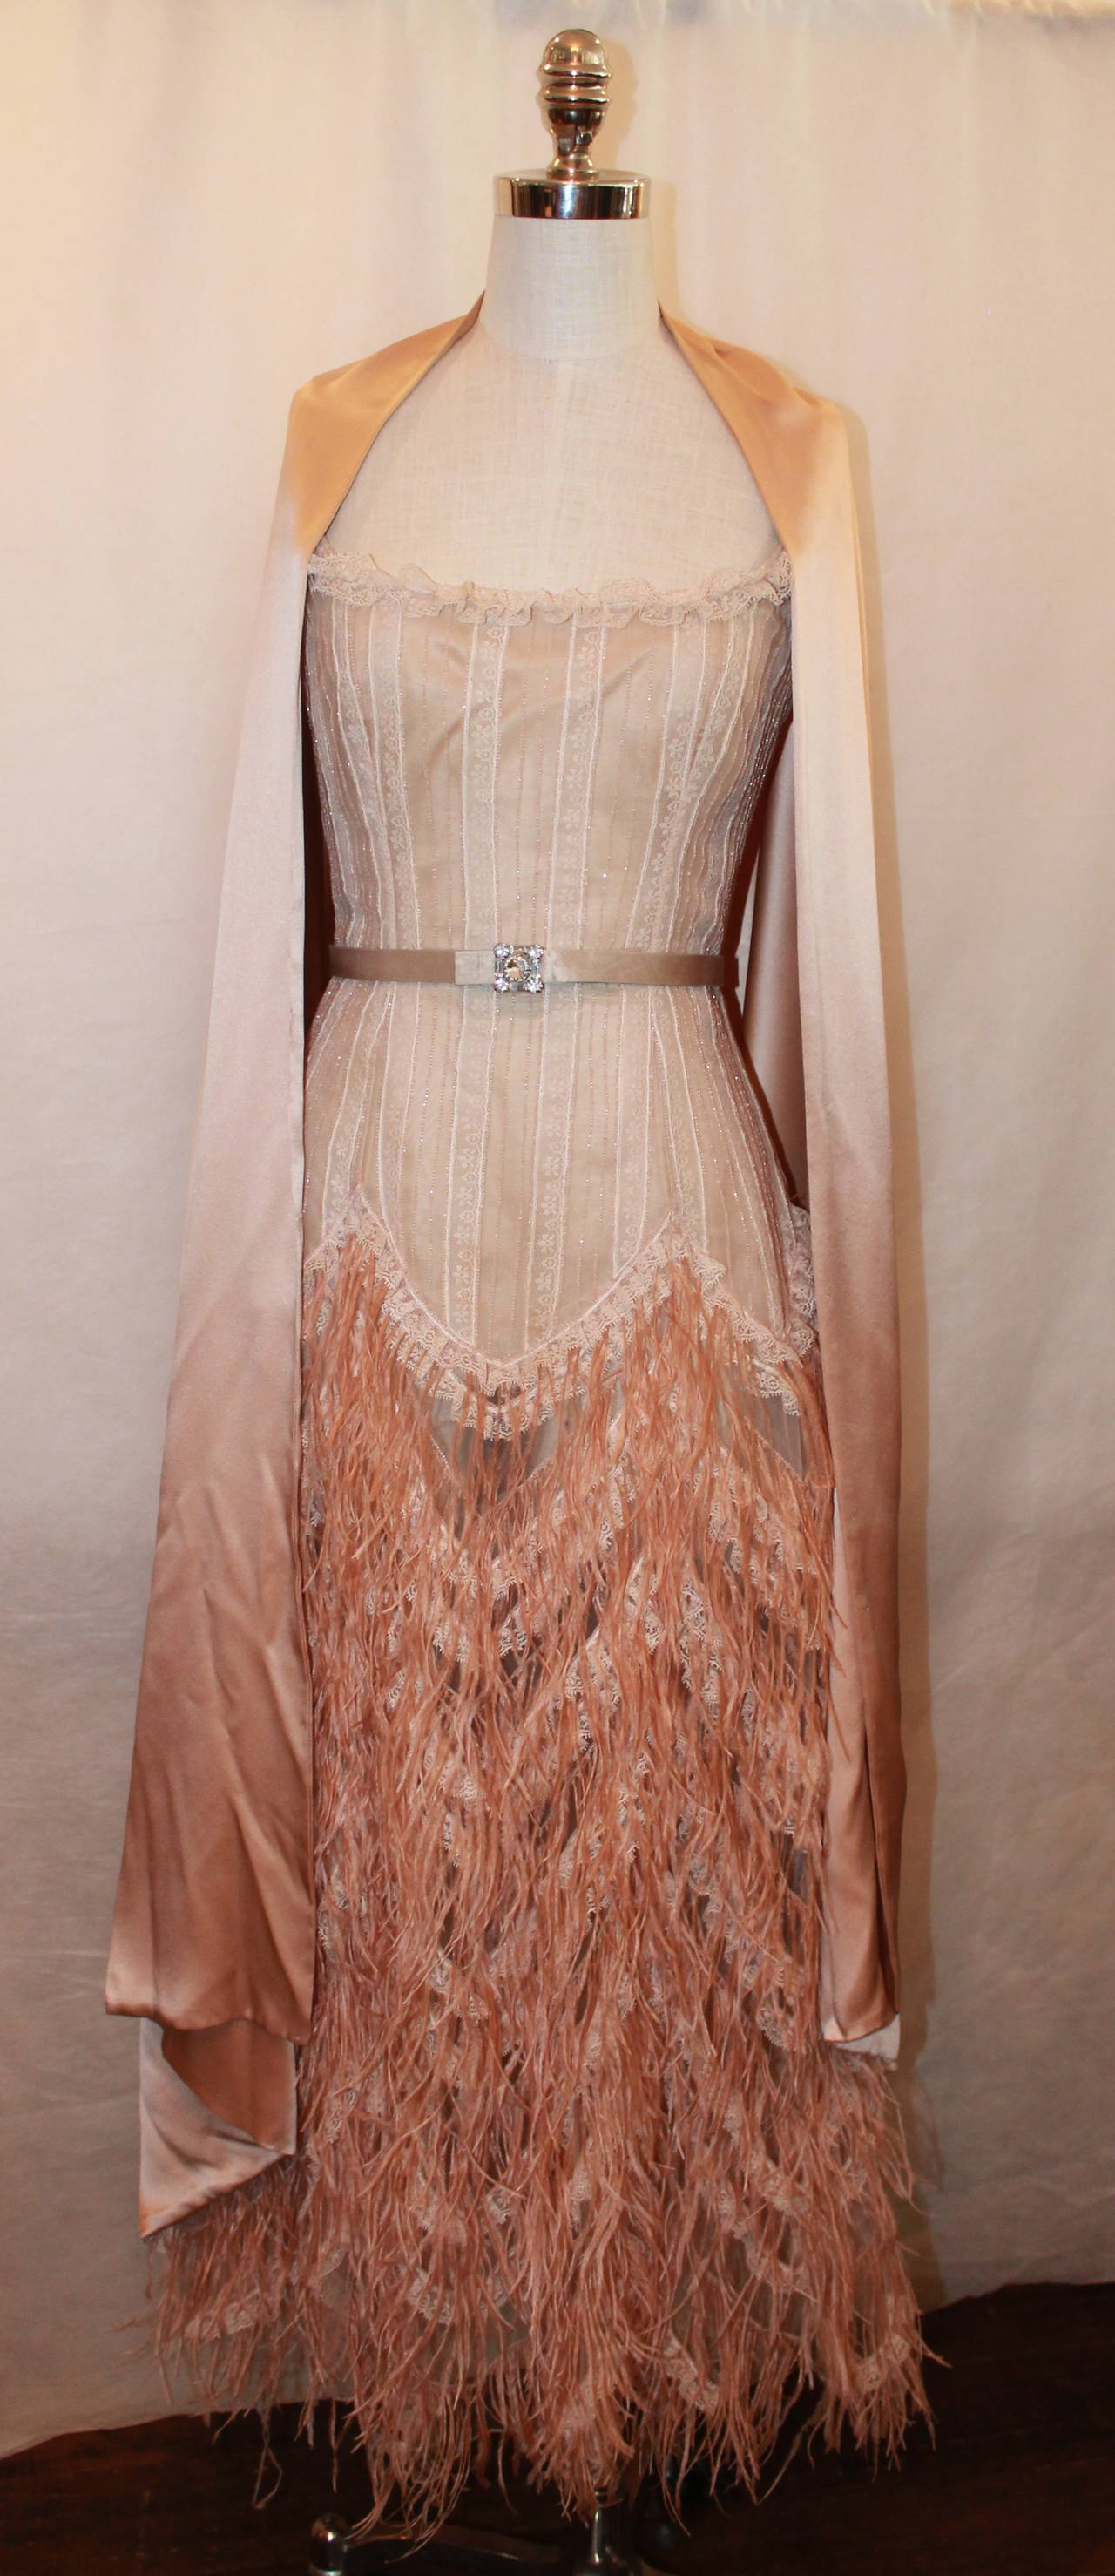 Oscar de la Renta Blush Lace Beaded Gown with Ostrich Feathers & Shawl - M For Sale 1